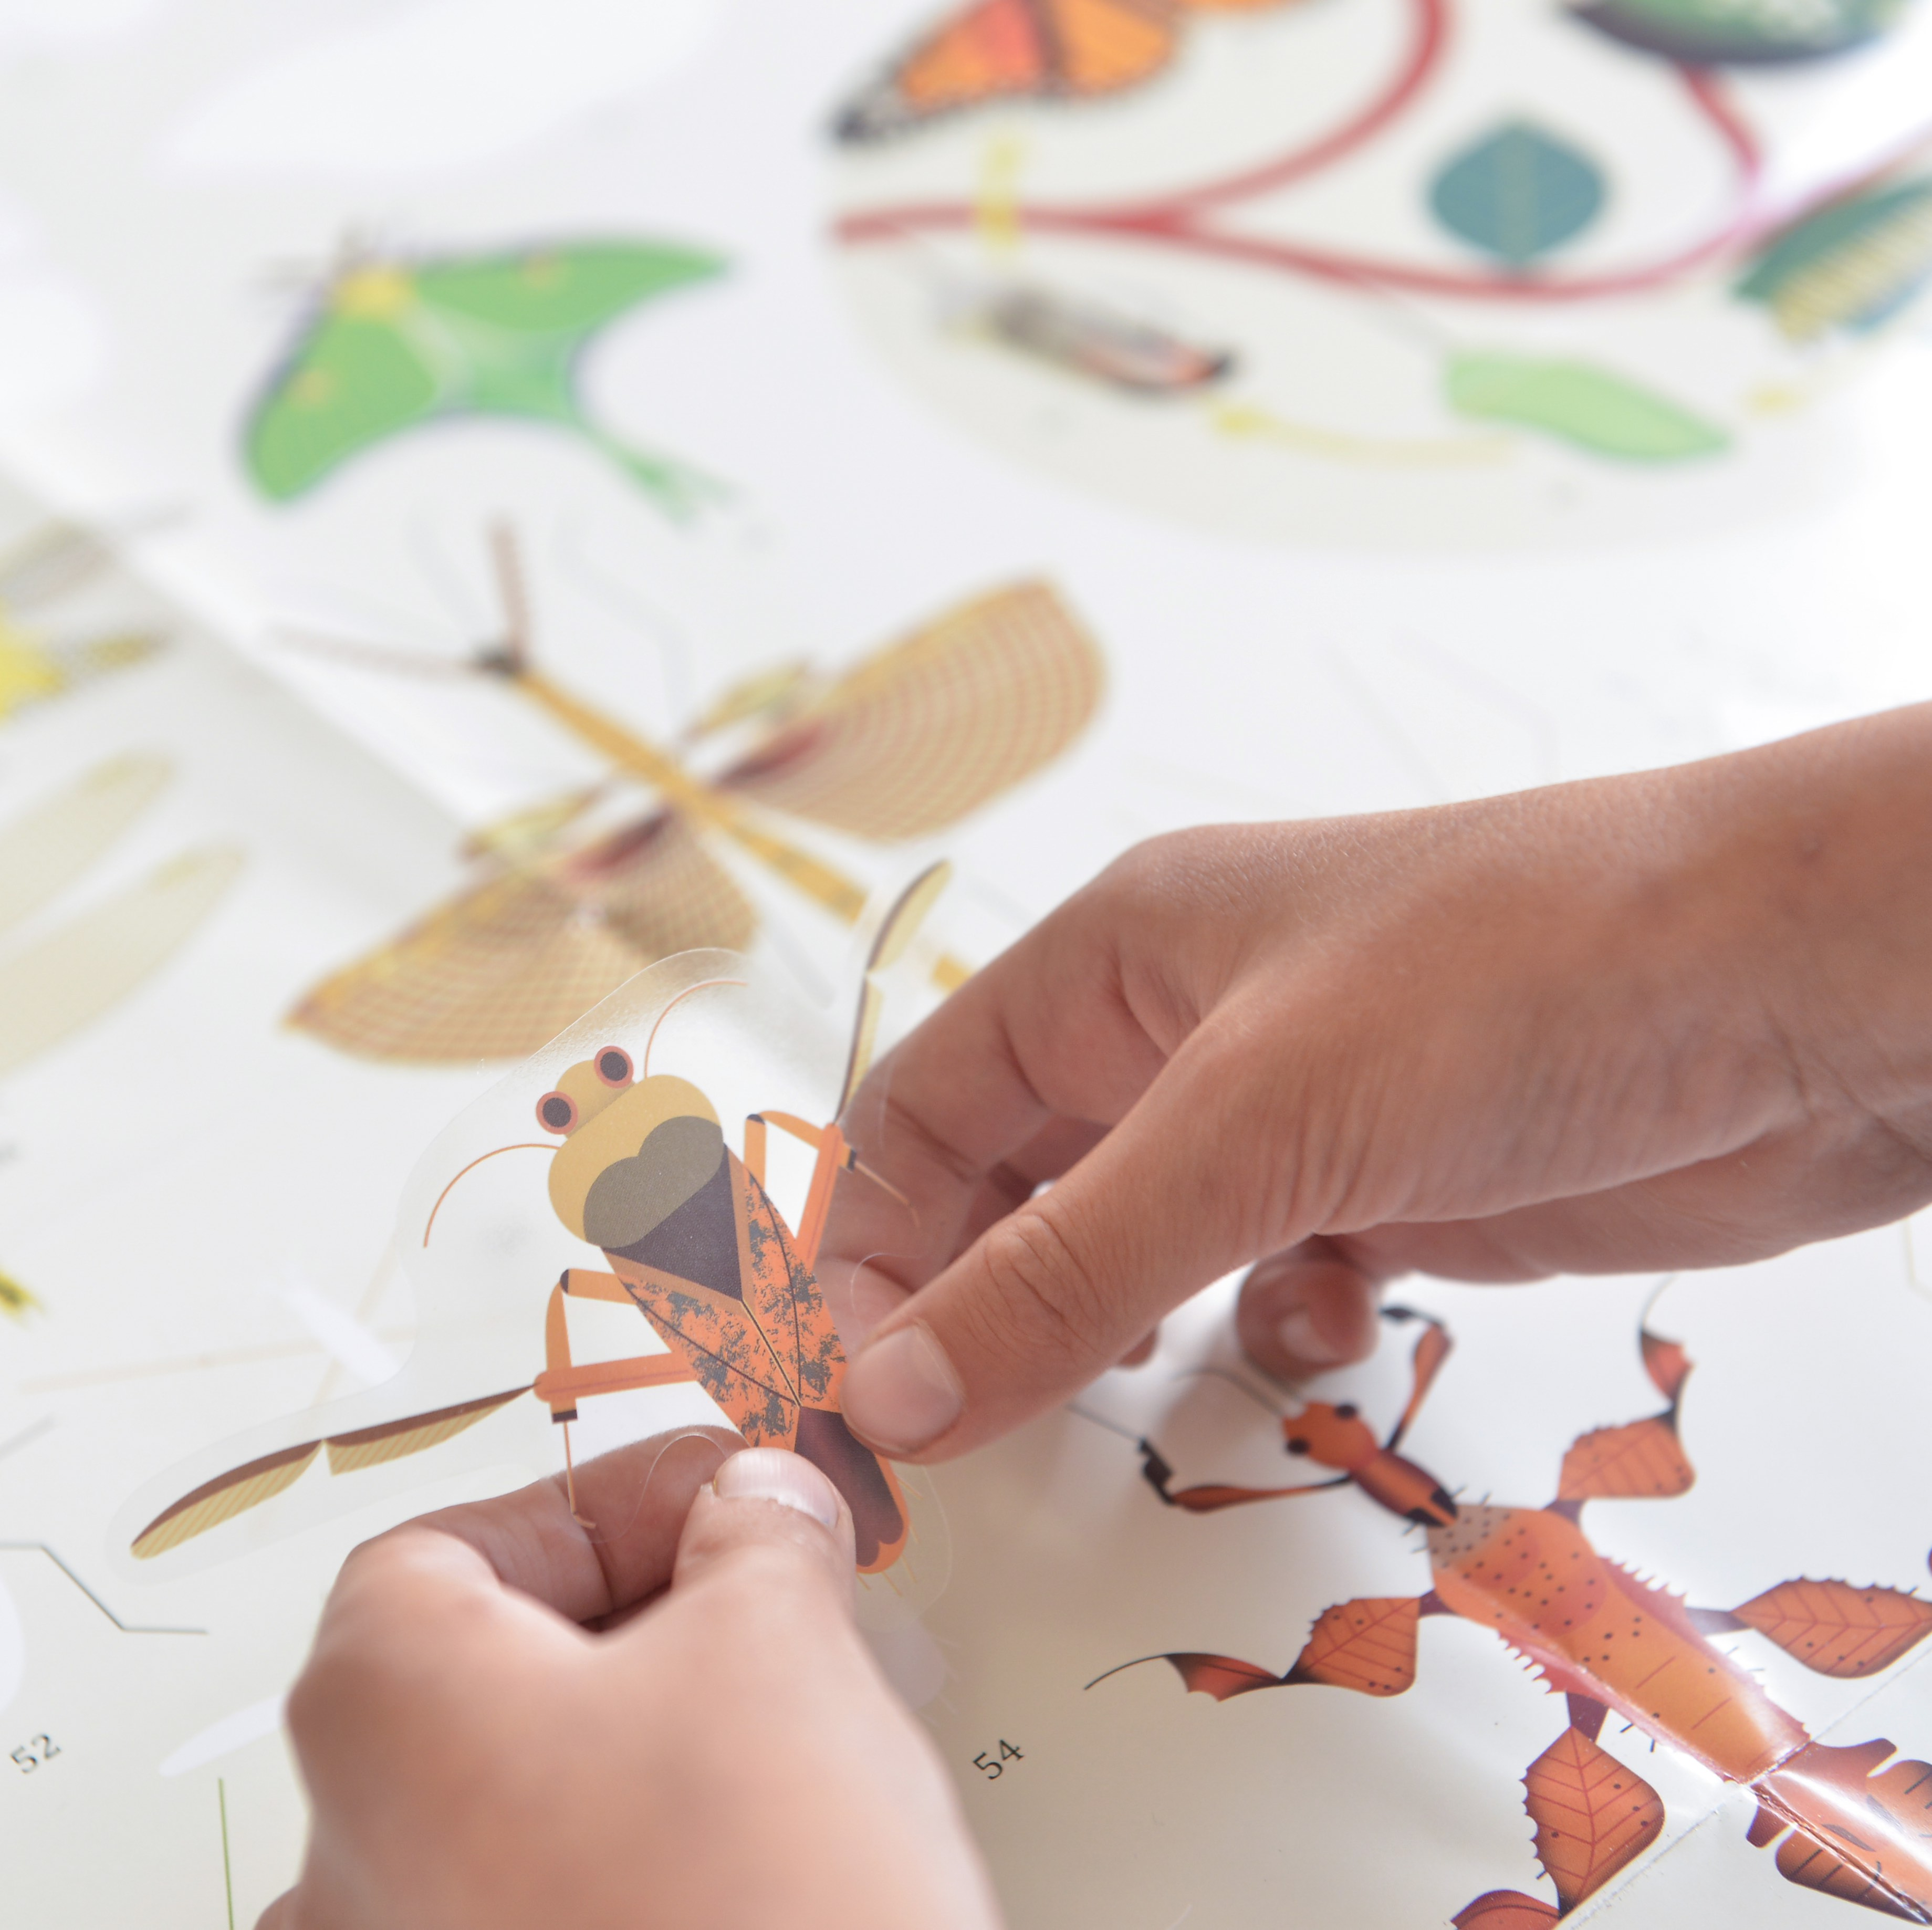 Insects Sticker Craft Set, Wall Poster lifestyle